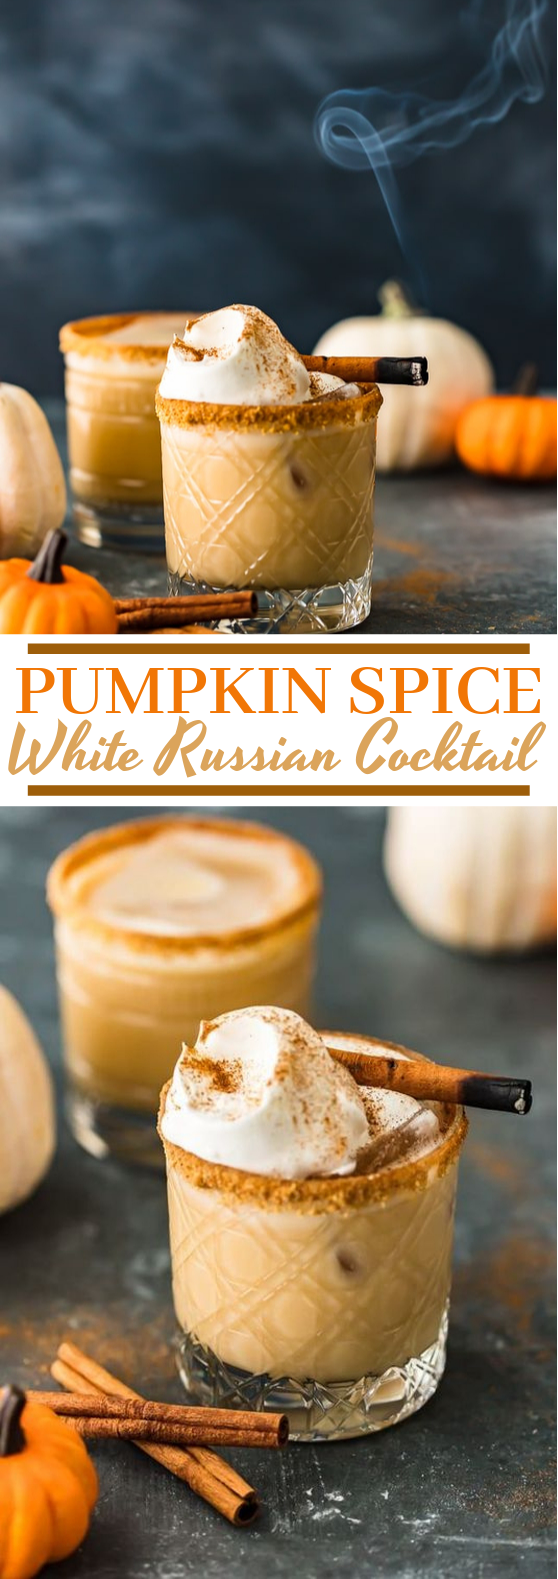 Pumpkin Spice White Russian Cocktail #cocktails #drinks